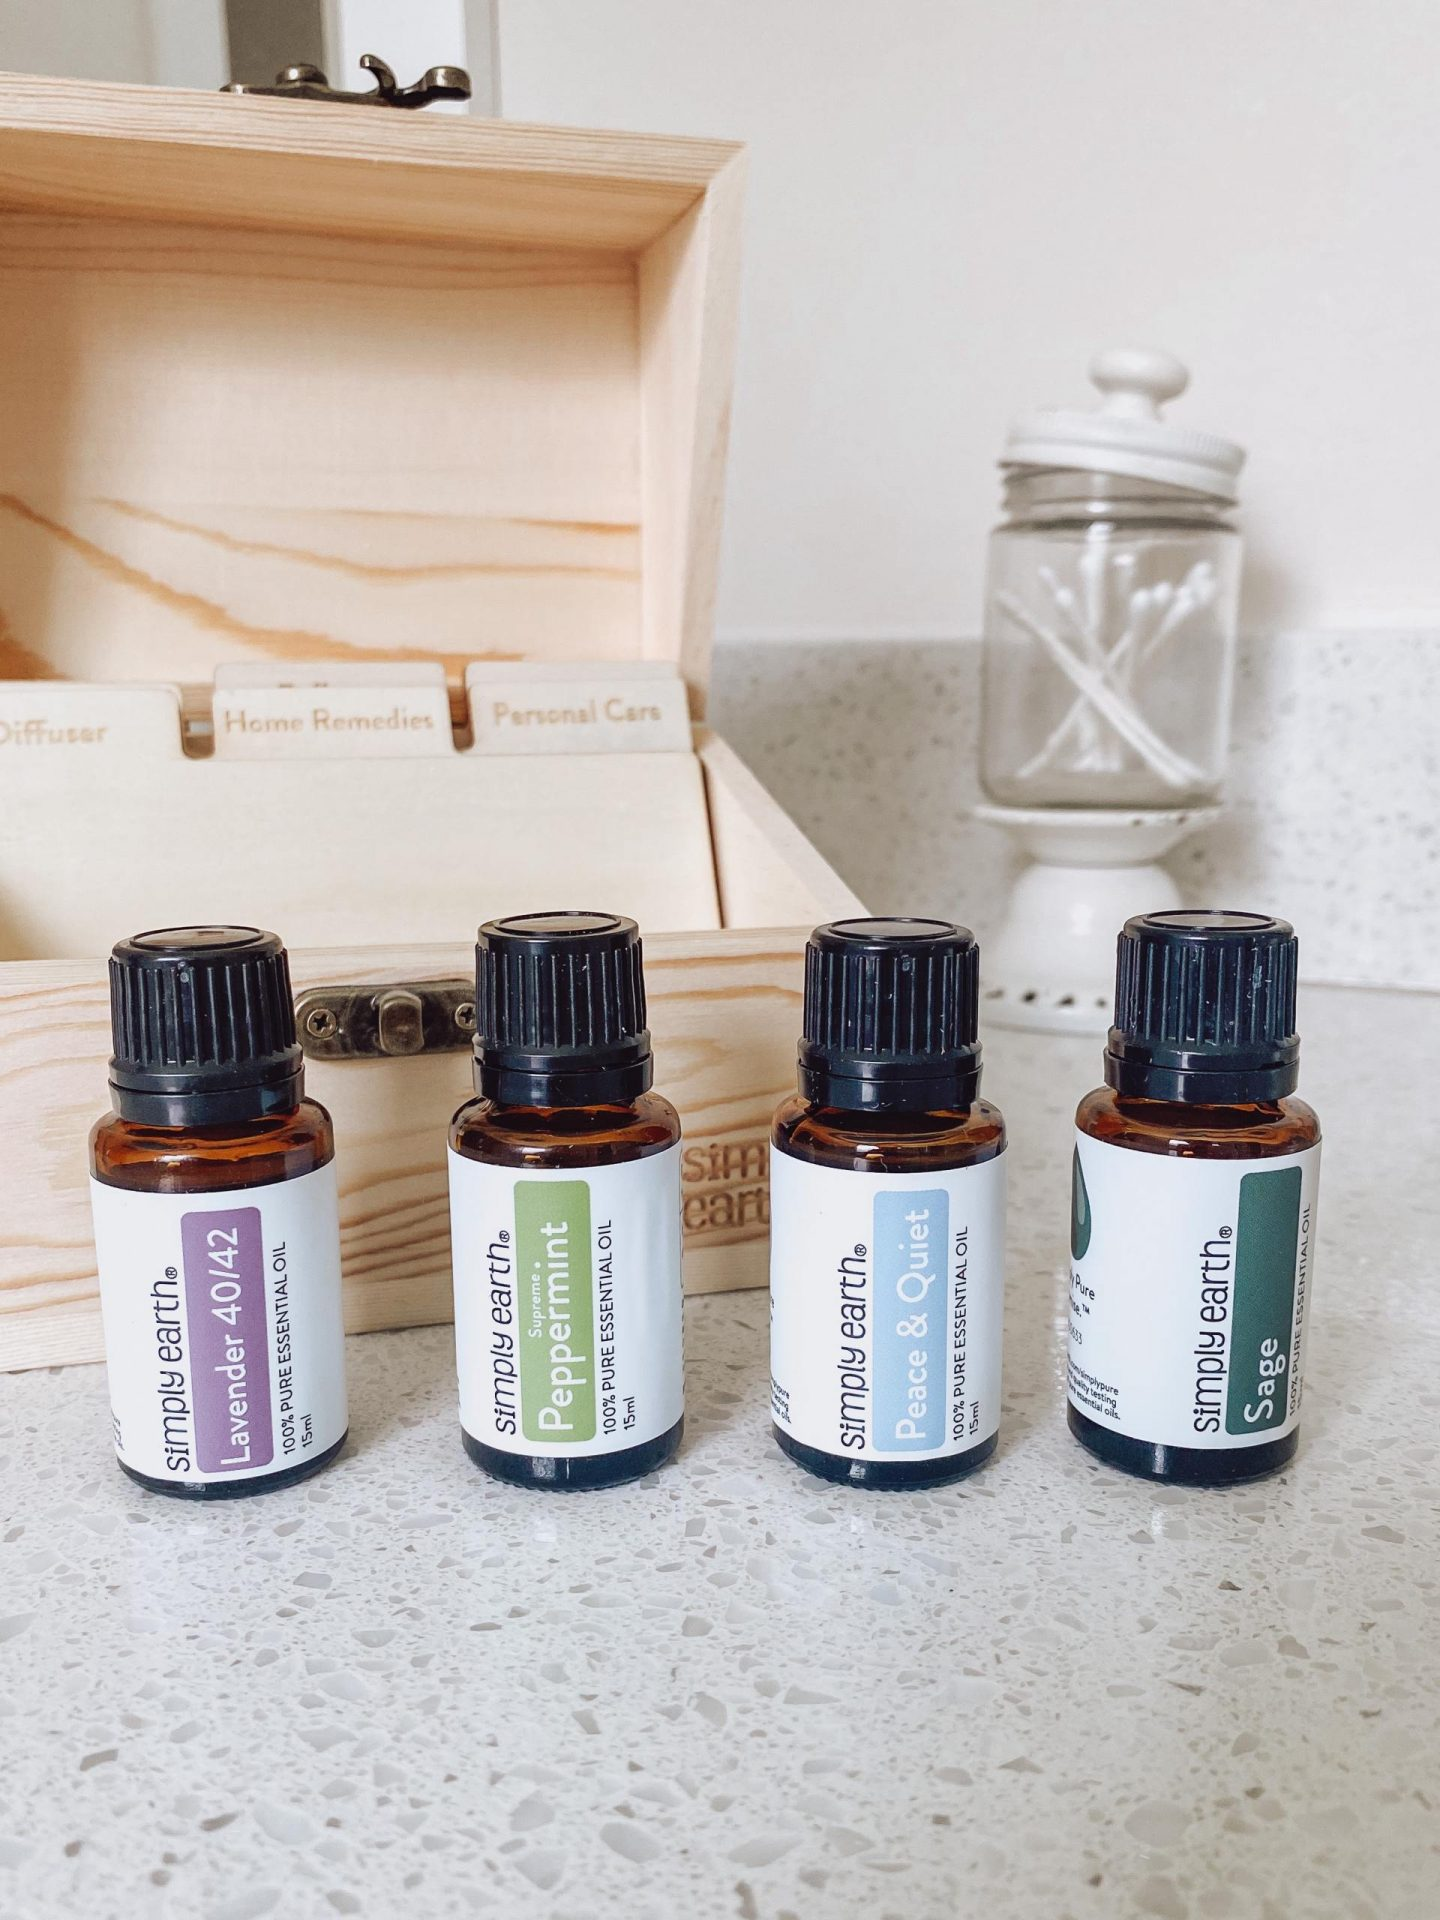 NC blogger Rebecca Lately is sharing her Simply Earth August 2021 box along with a new product from Simply Earth, the recipe box!